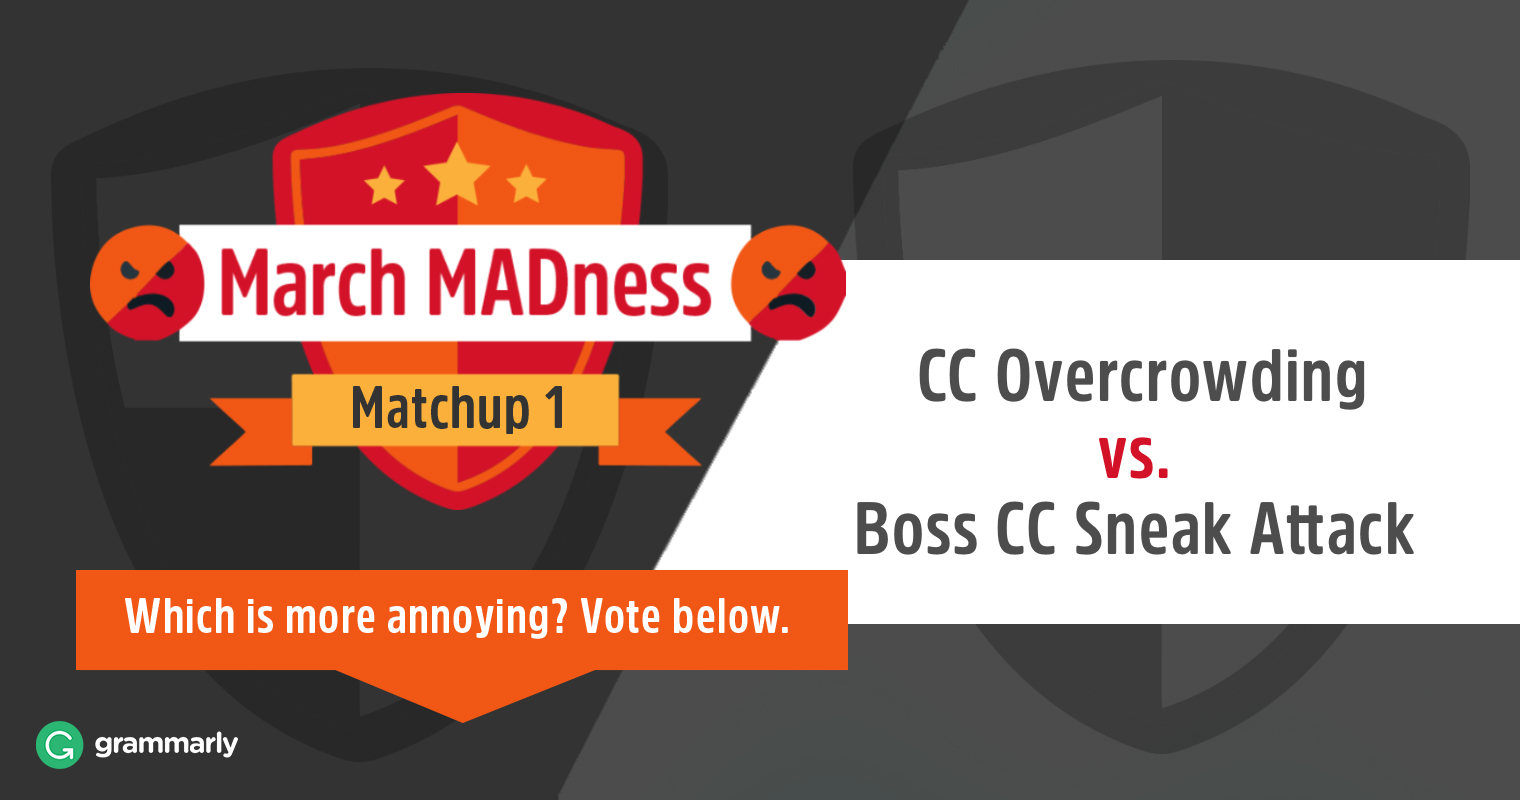 March MADness: CC Overcrowding vs. Boss CC Sneak Attack image